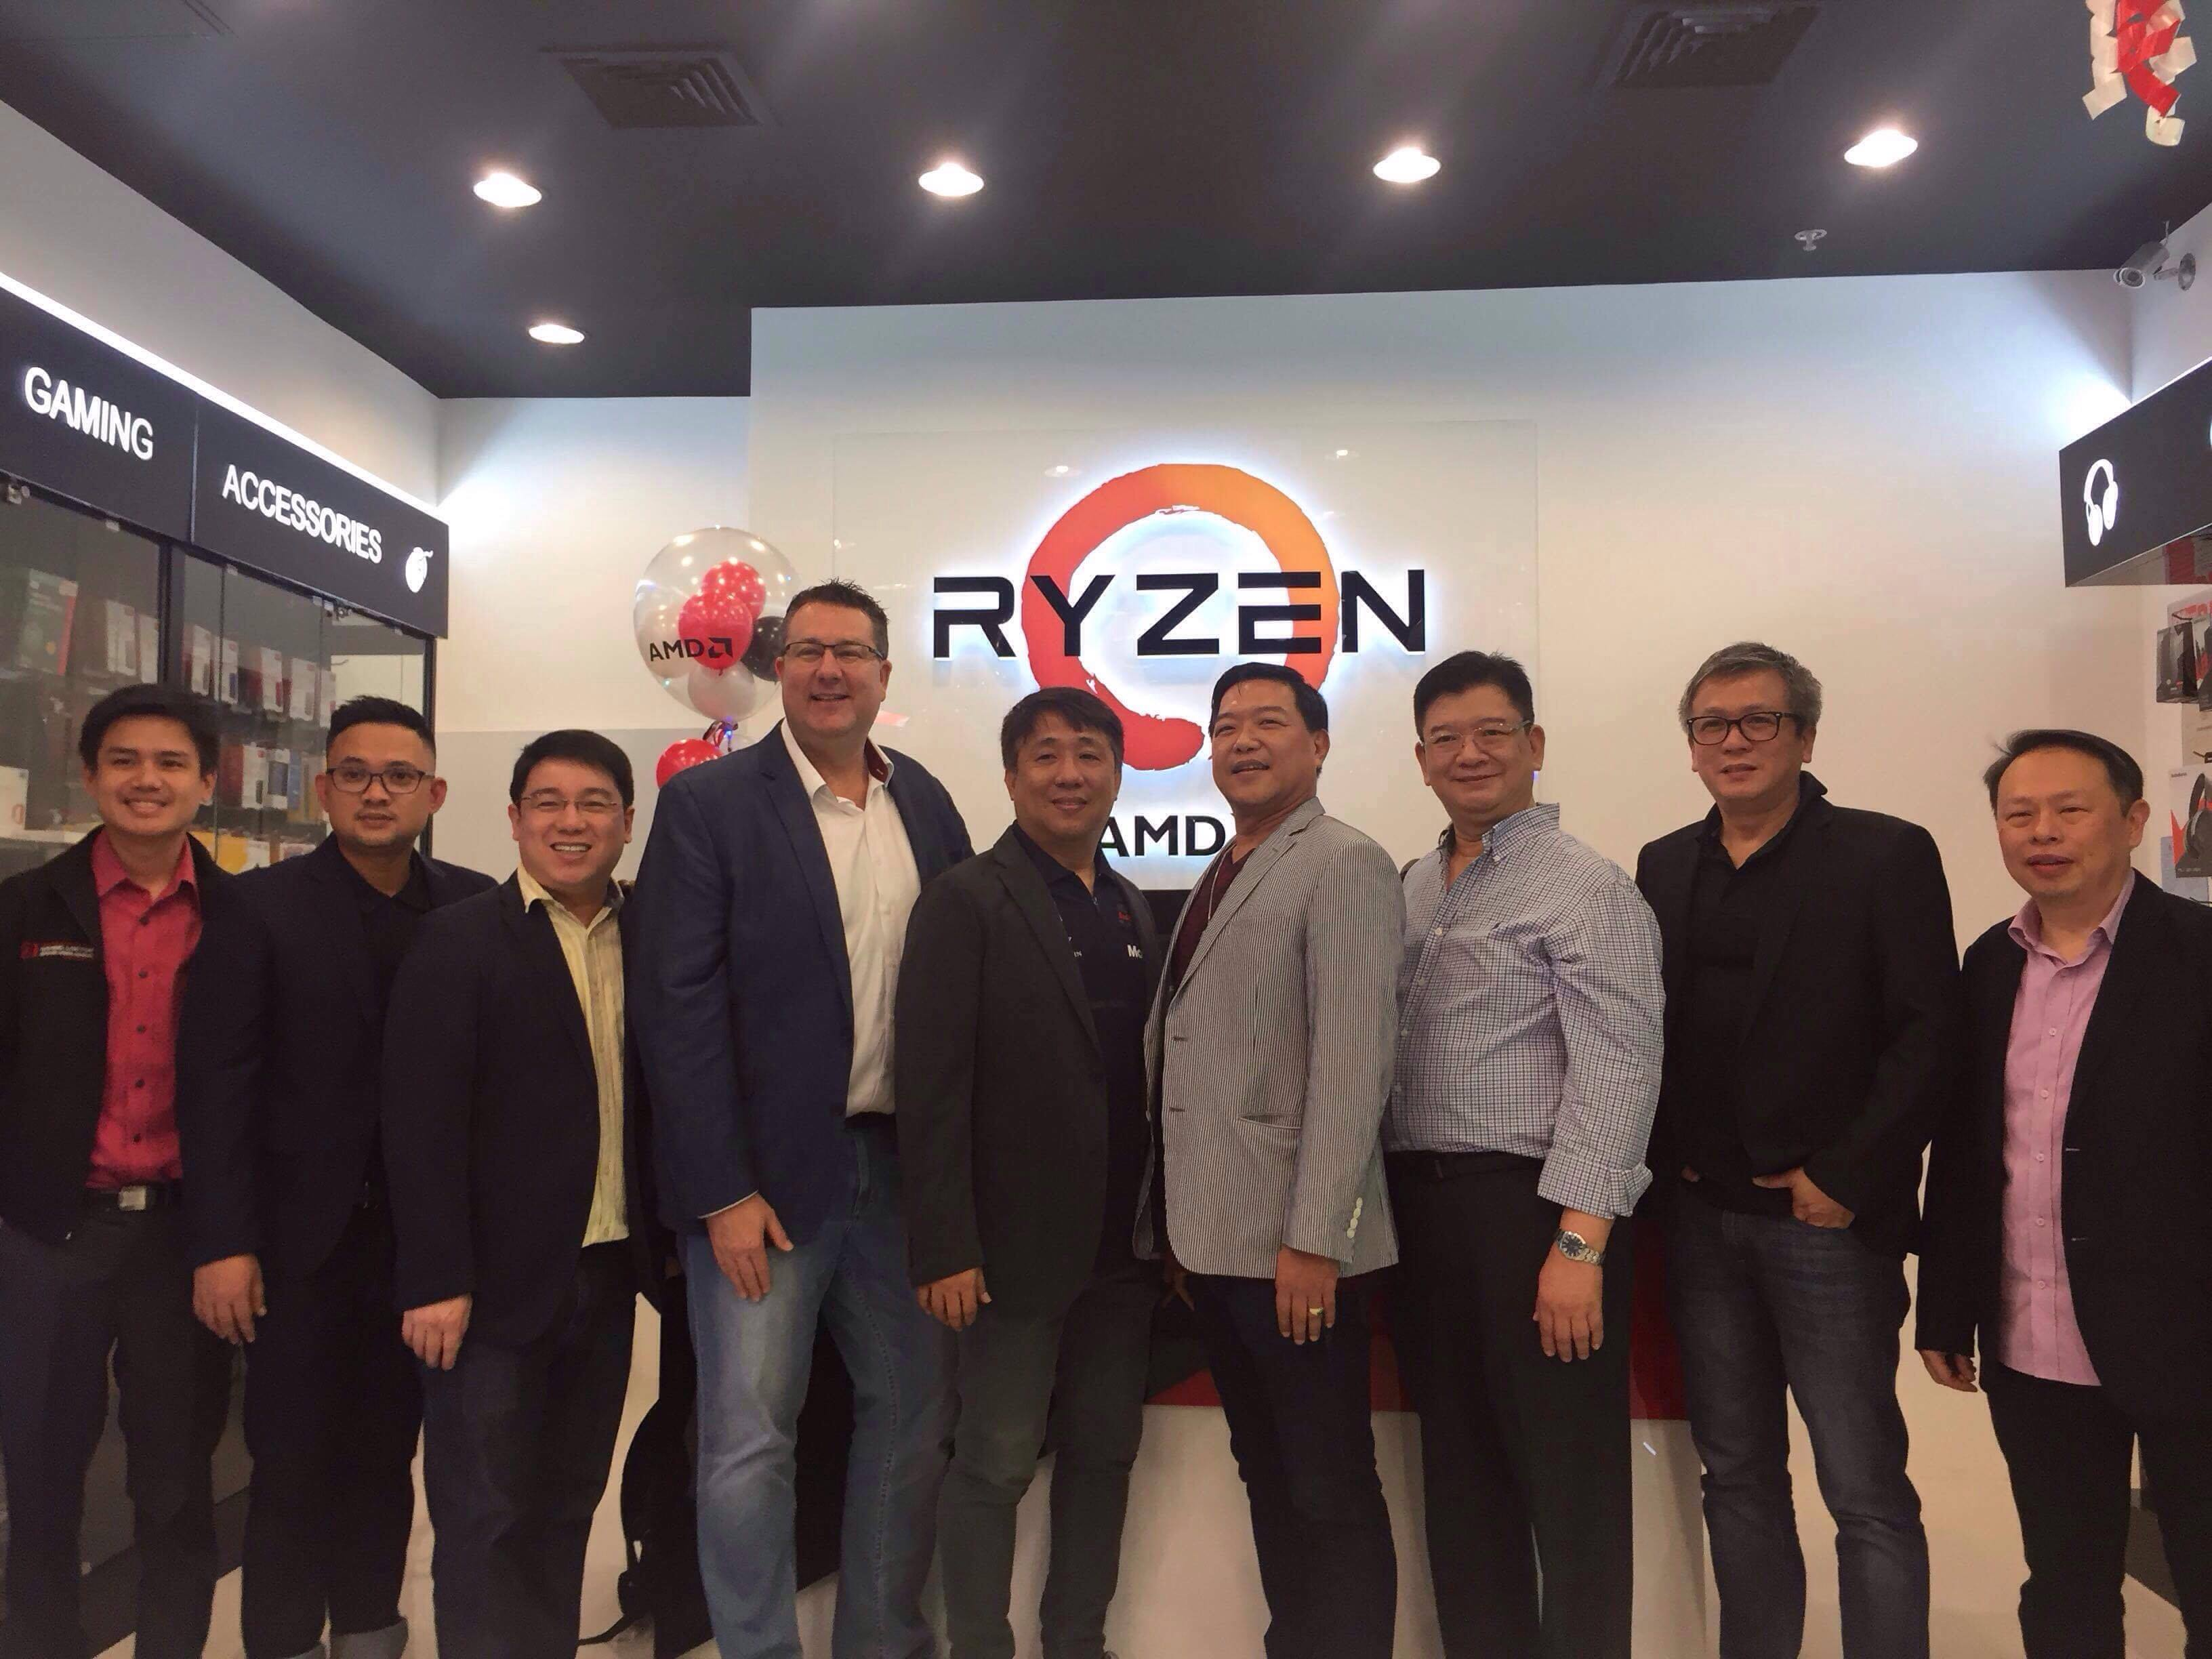 AMD Opens its First Concept Store in APJ, and it's Located Here in PH!